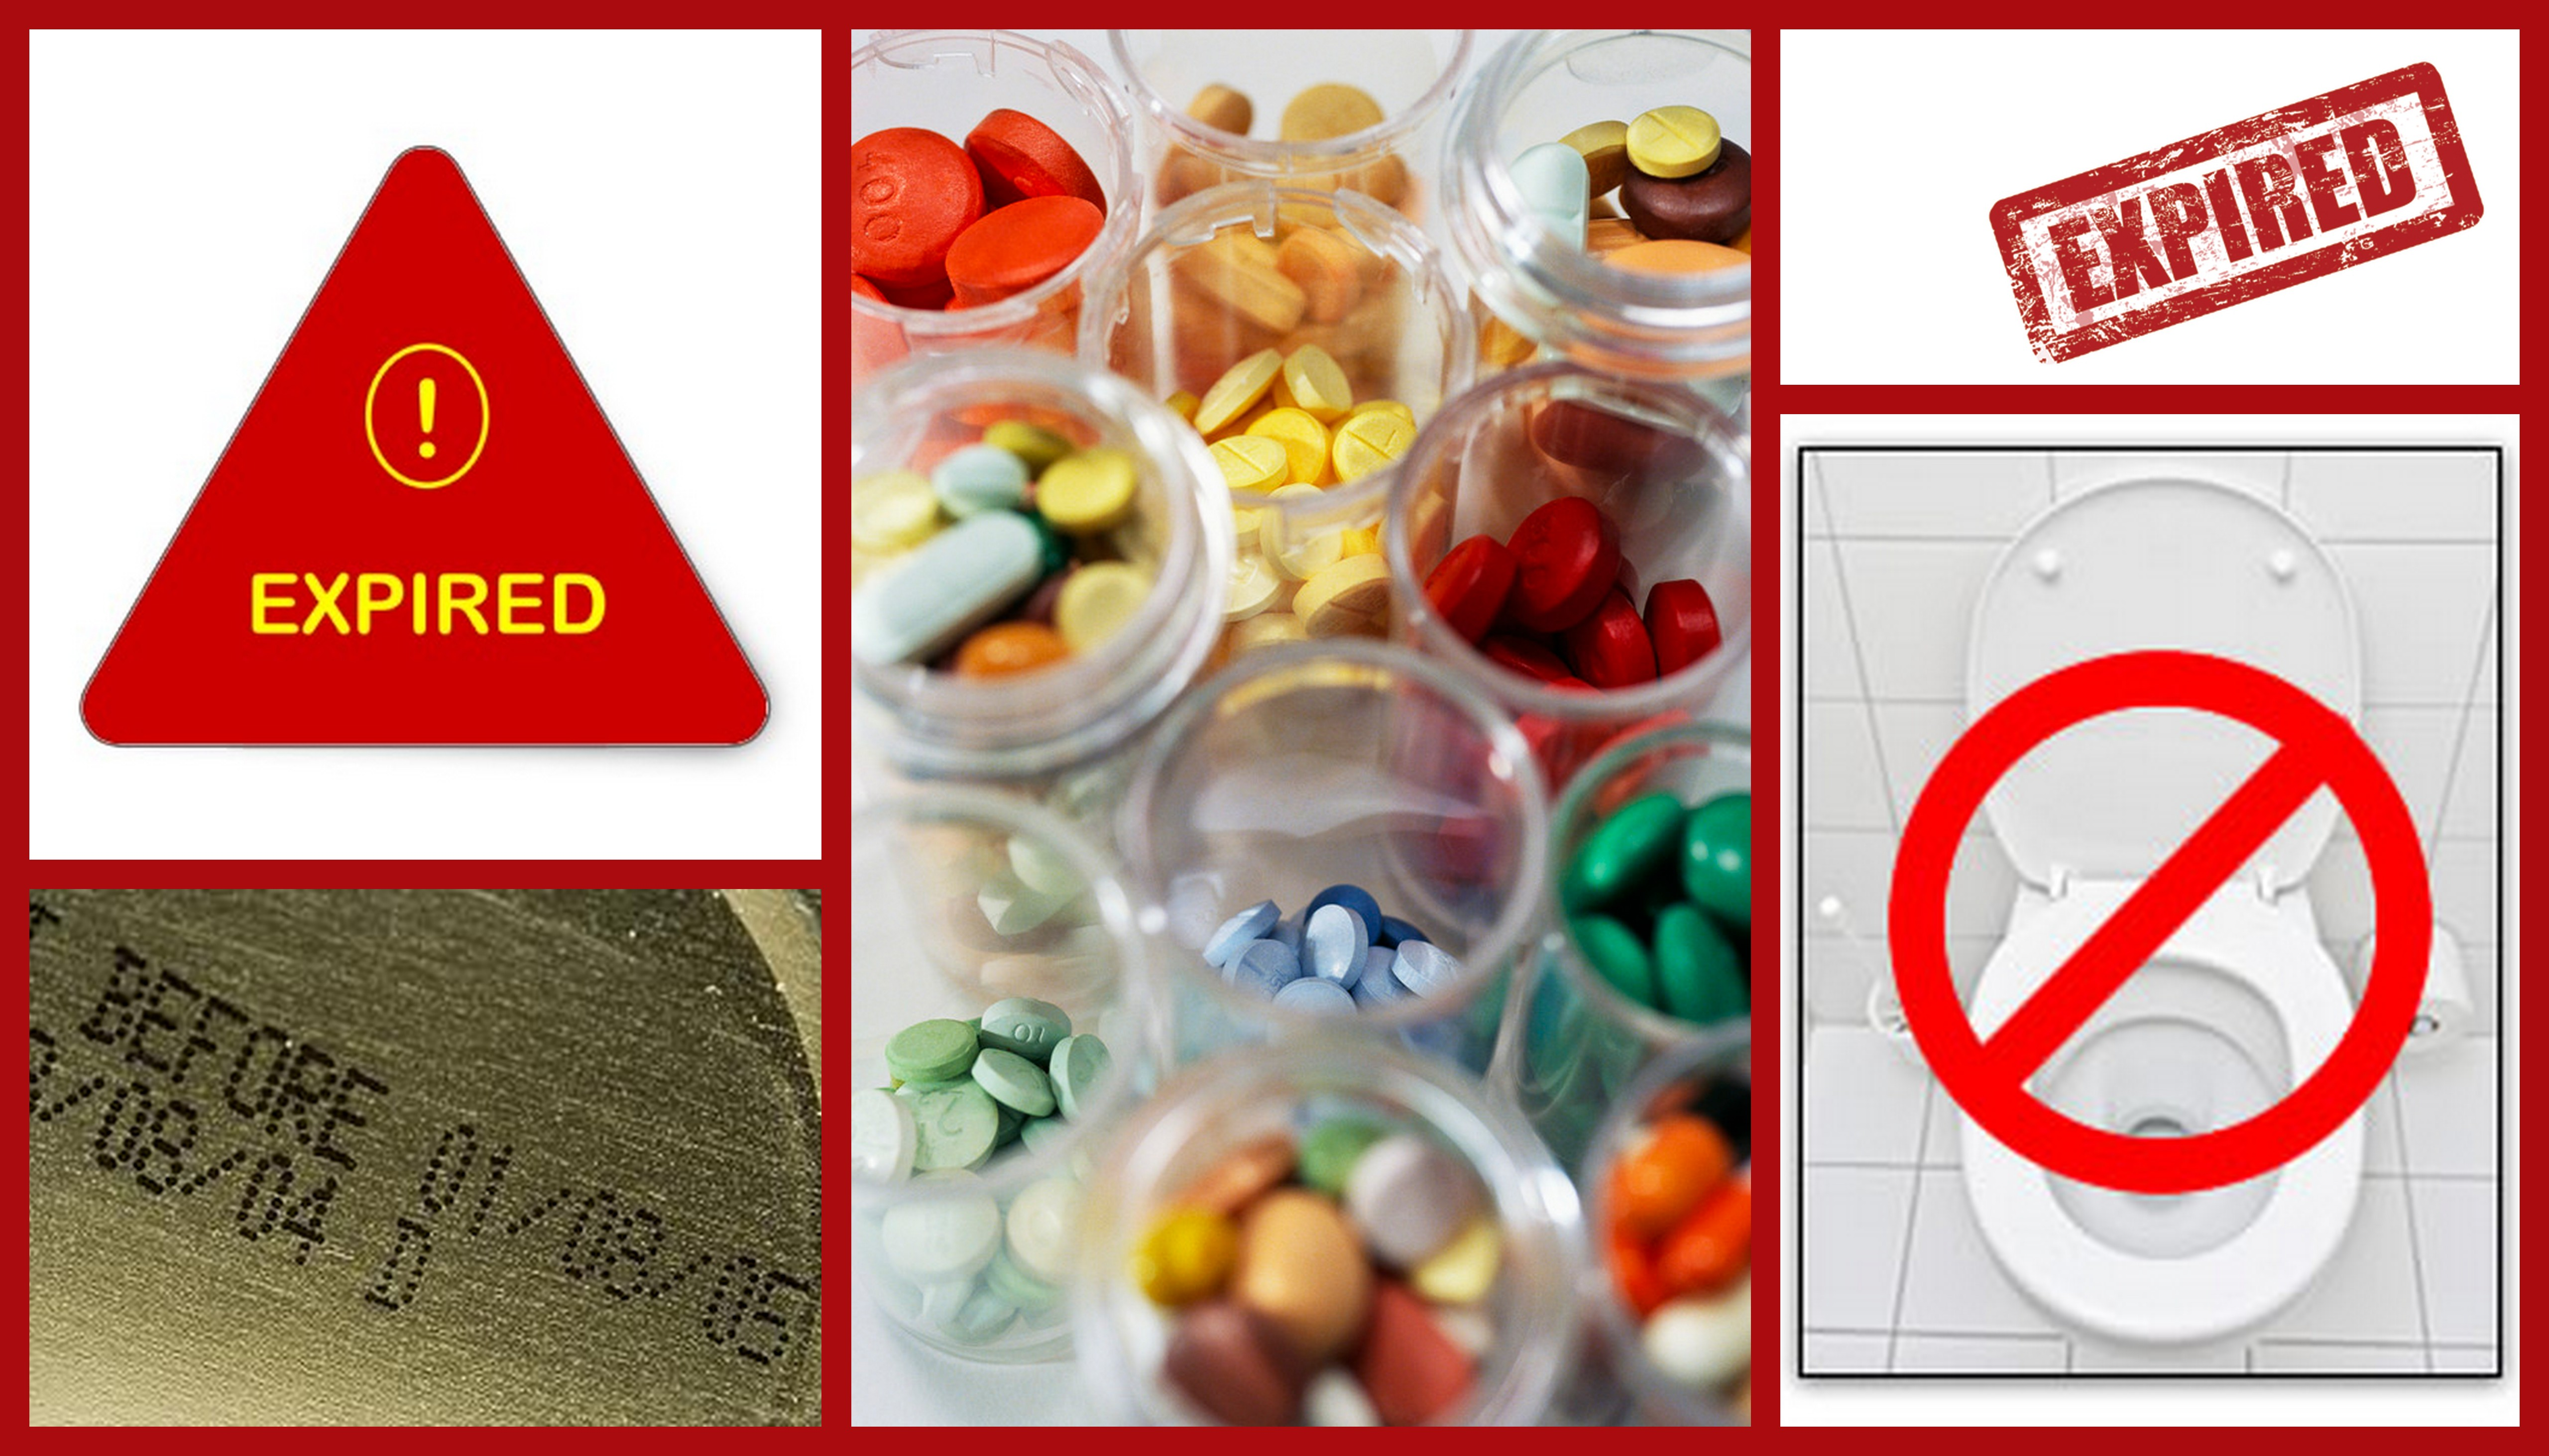 Pills clipart expired Have Damin 2013 a you